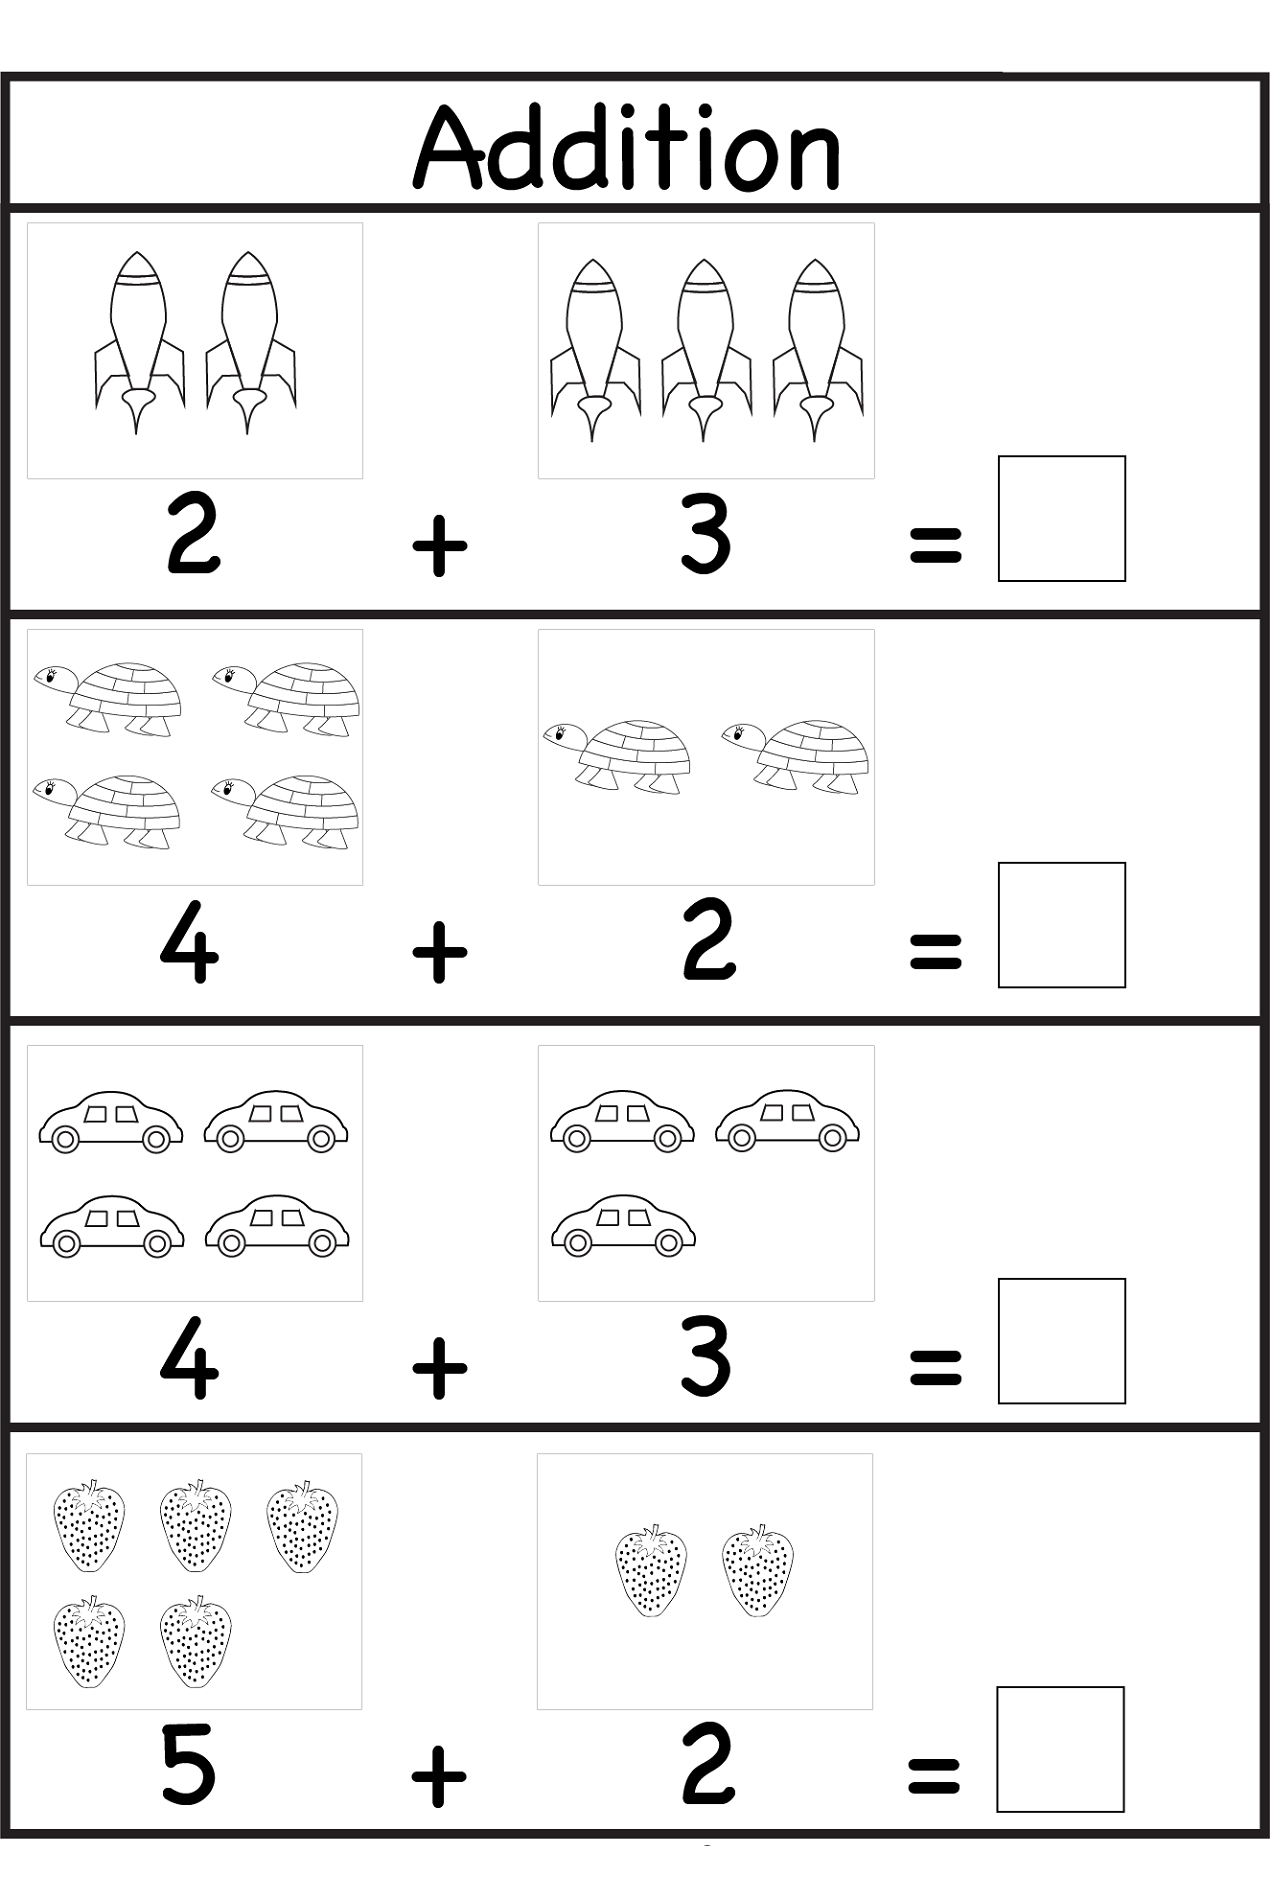 Worksheets For 3 Years Old Kids